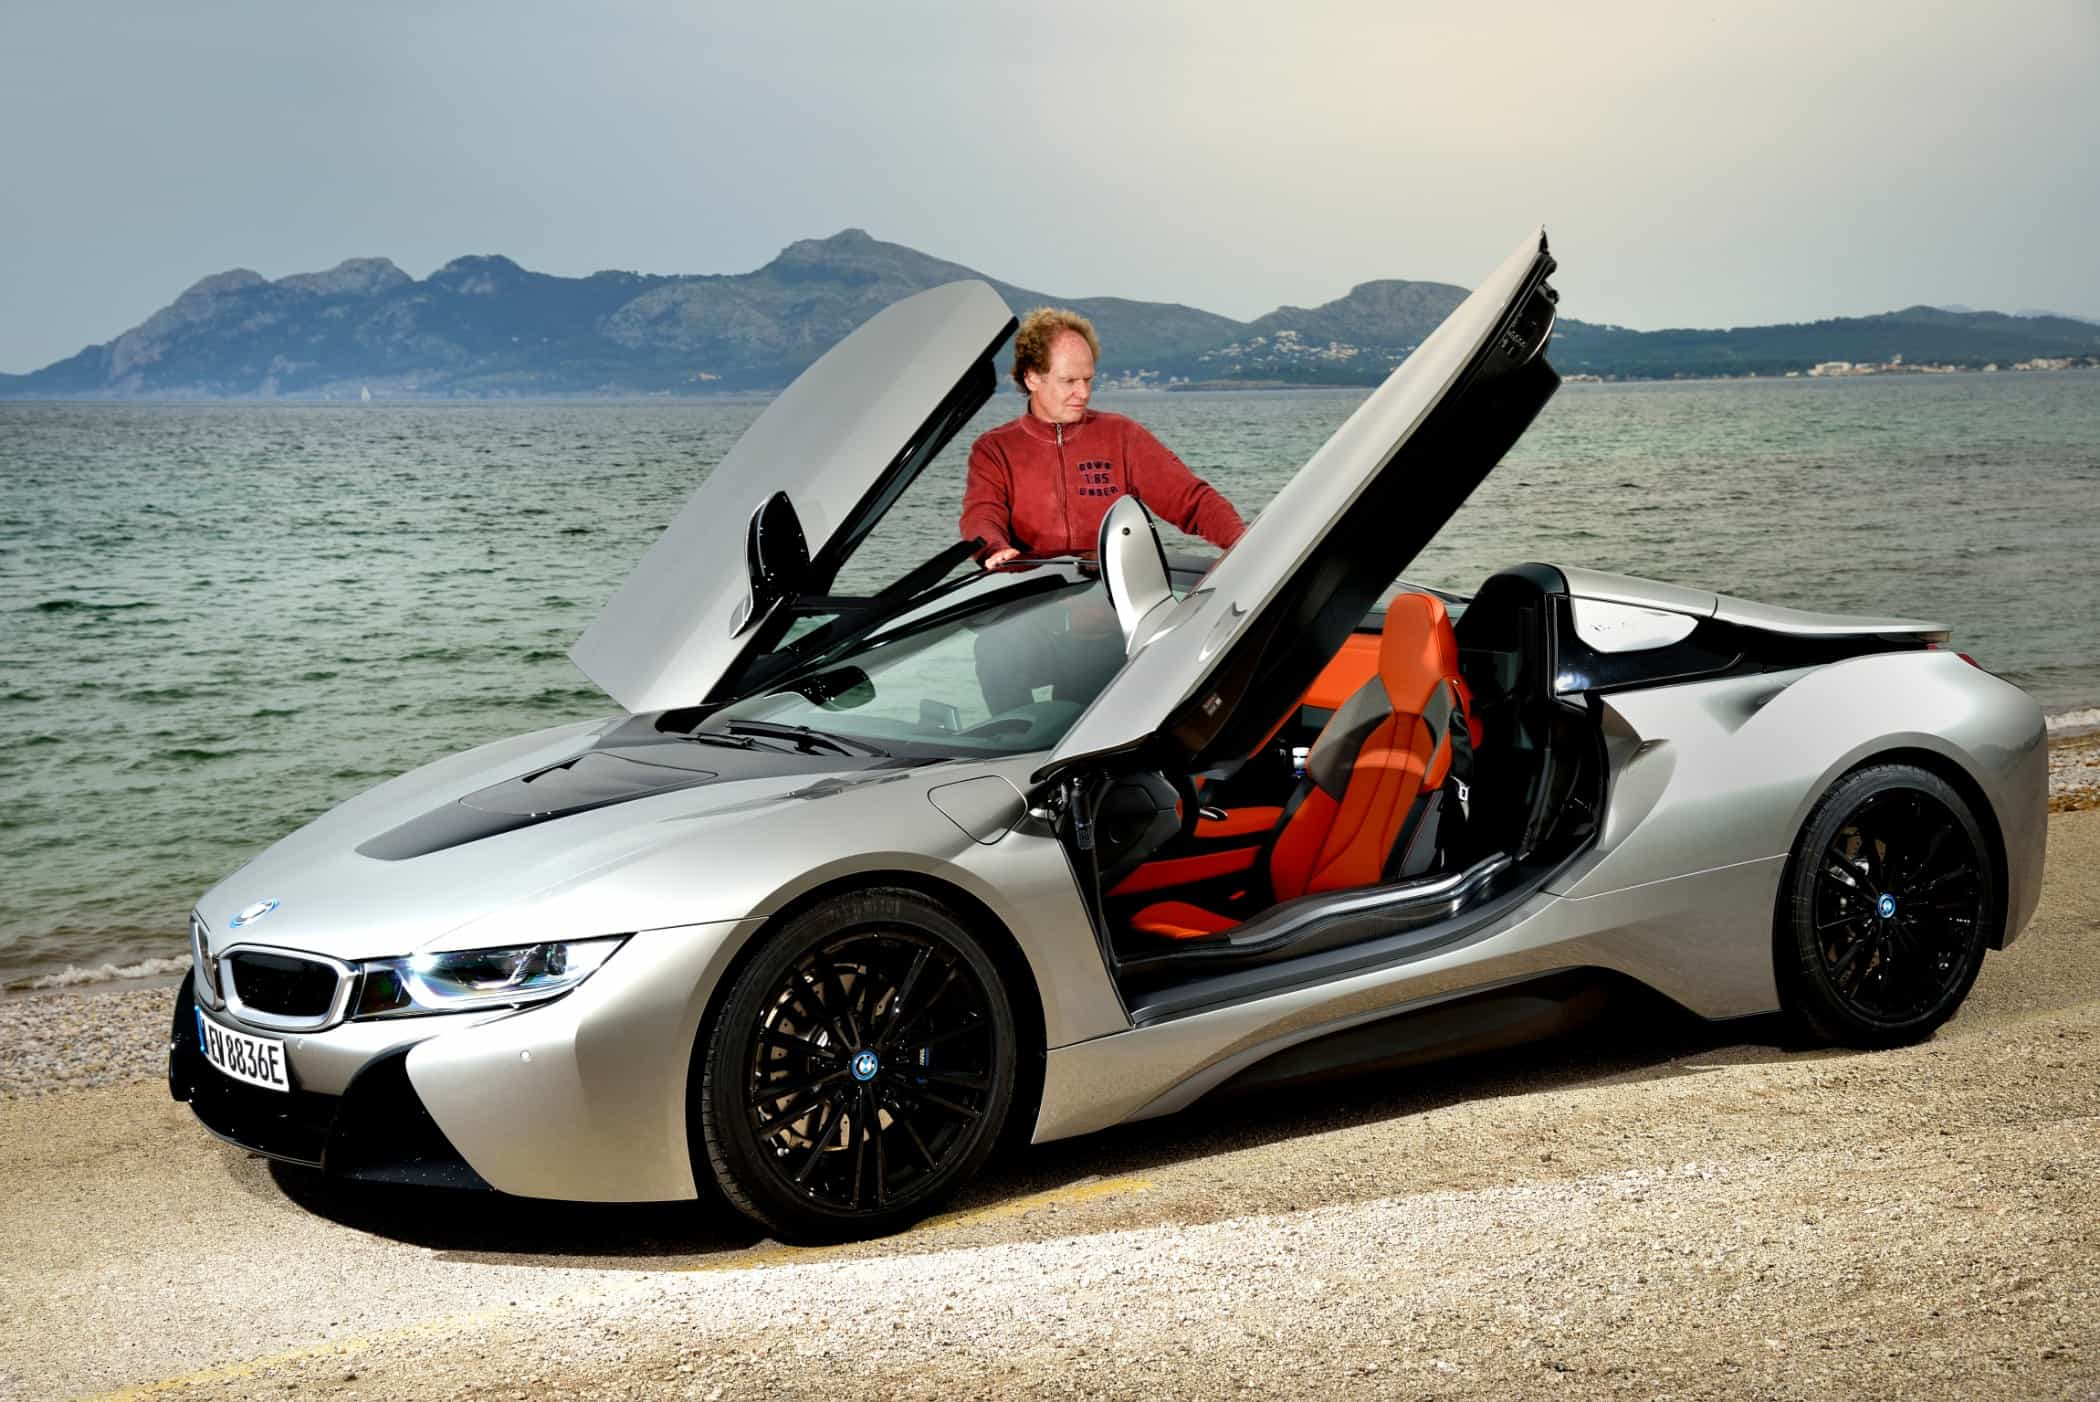 BMW i8 Roadster, Dr Friedbert Weizenecker